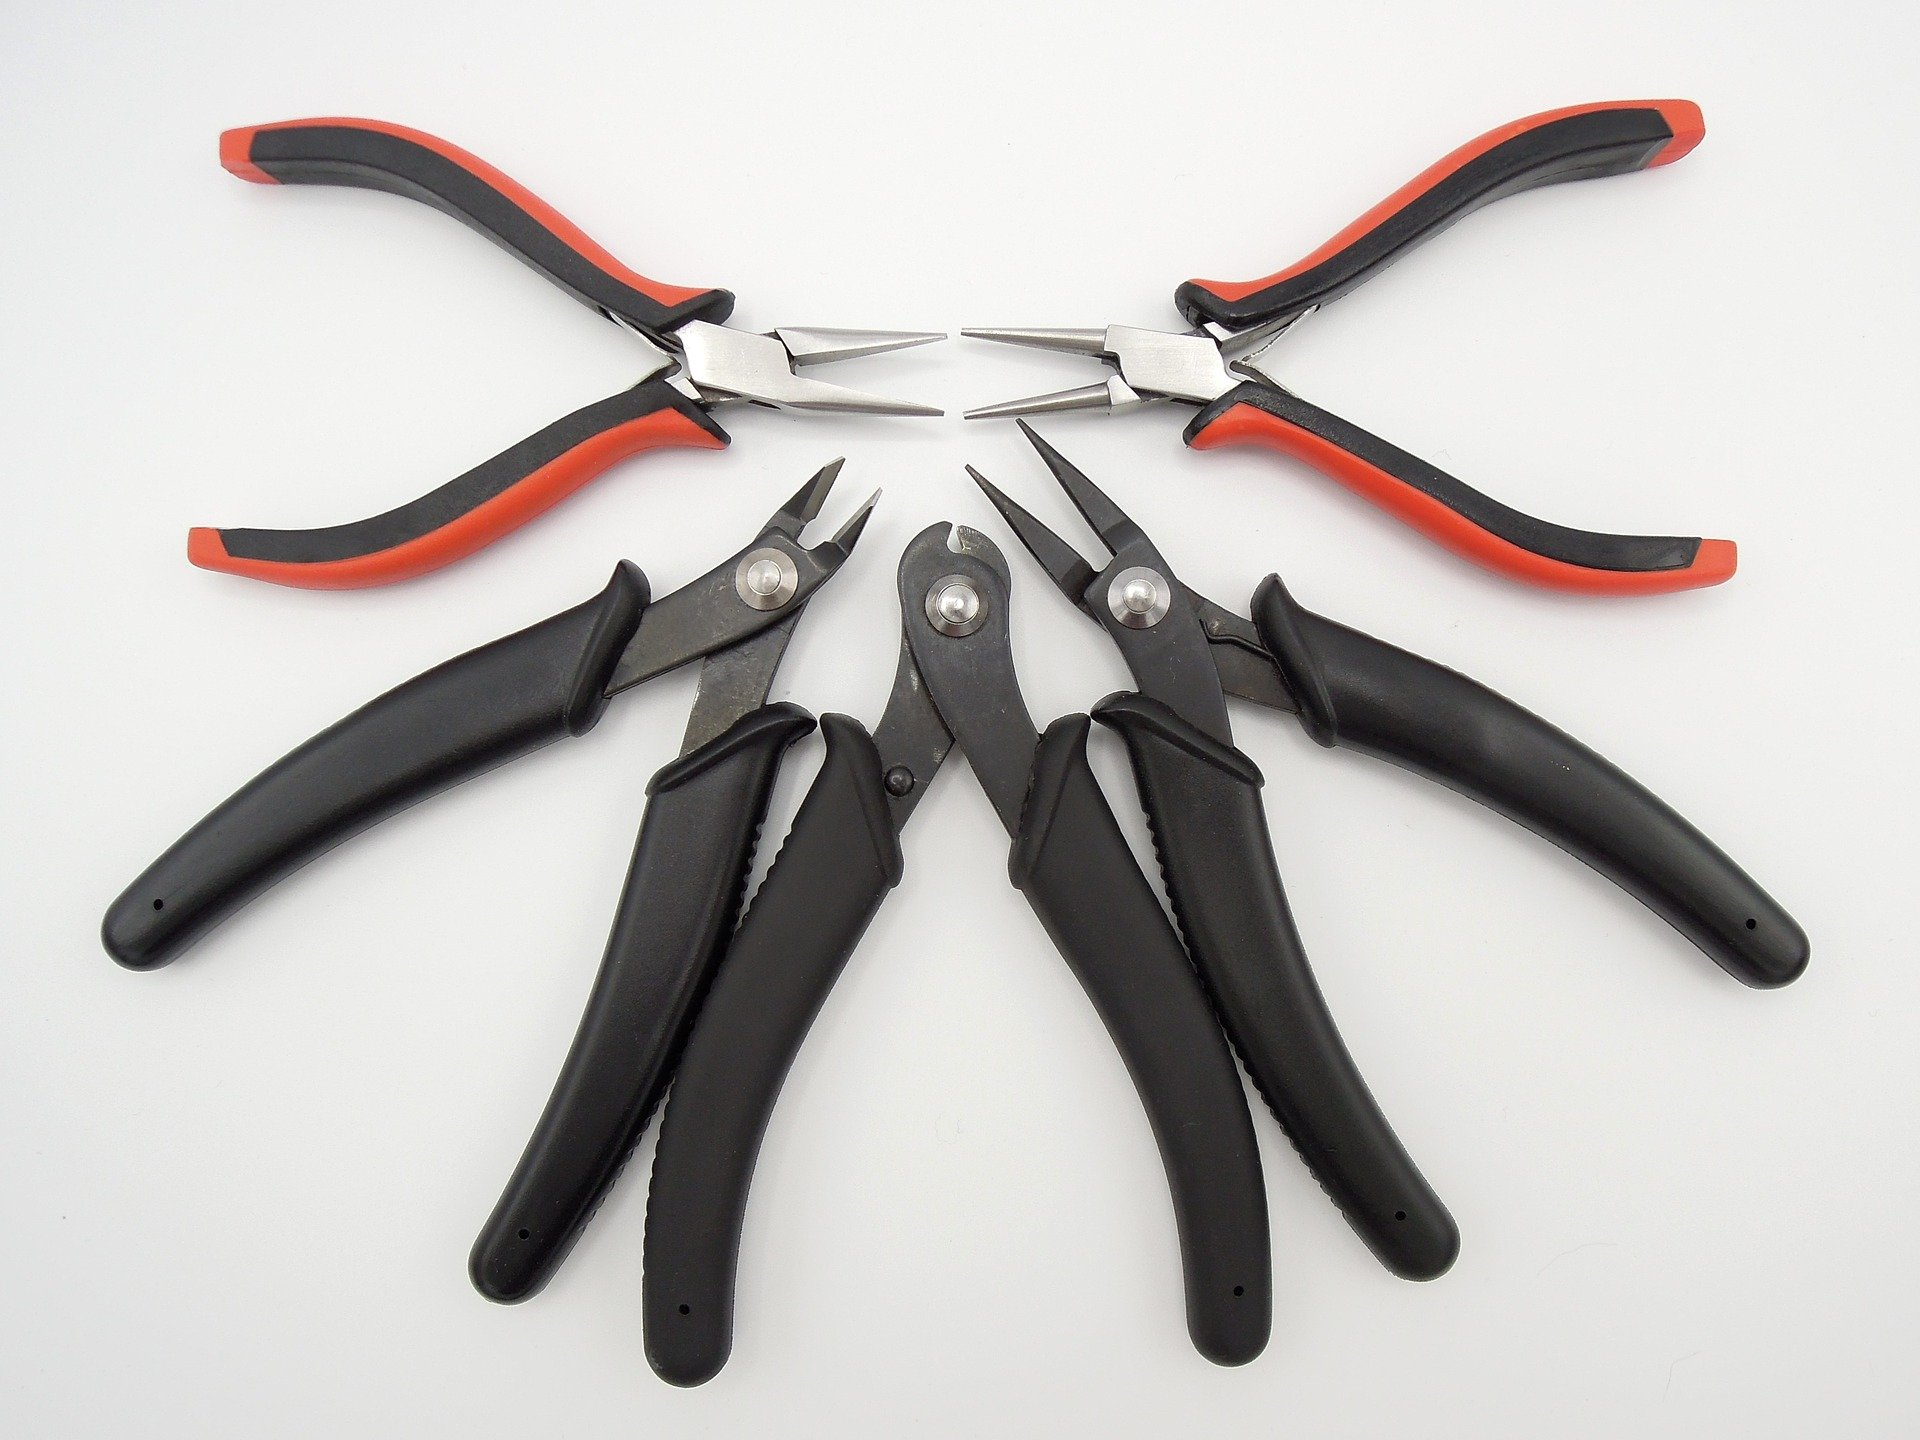 3 Jewelry Making Pliers You Need to Get Started (Plus 2 You May Wish to Consider)